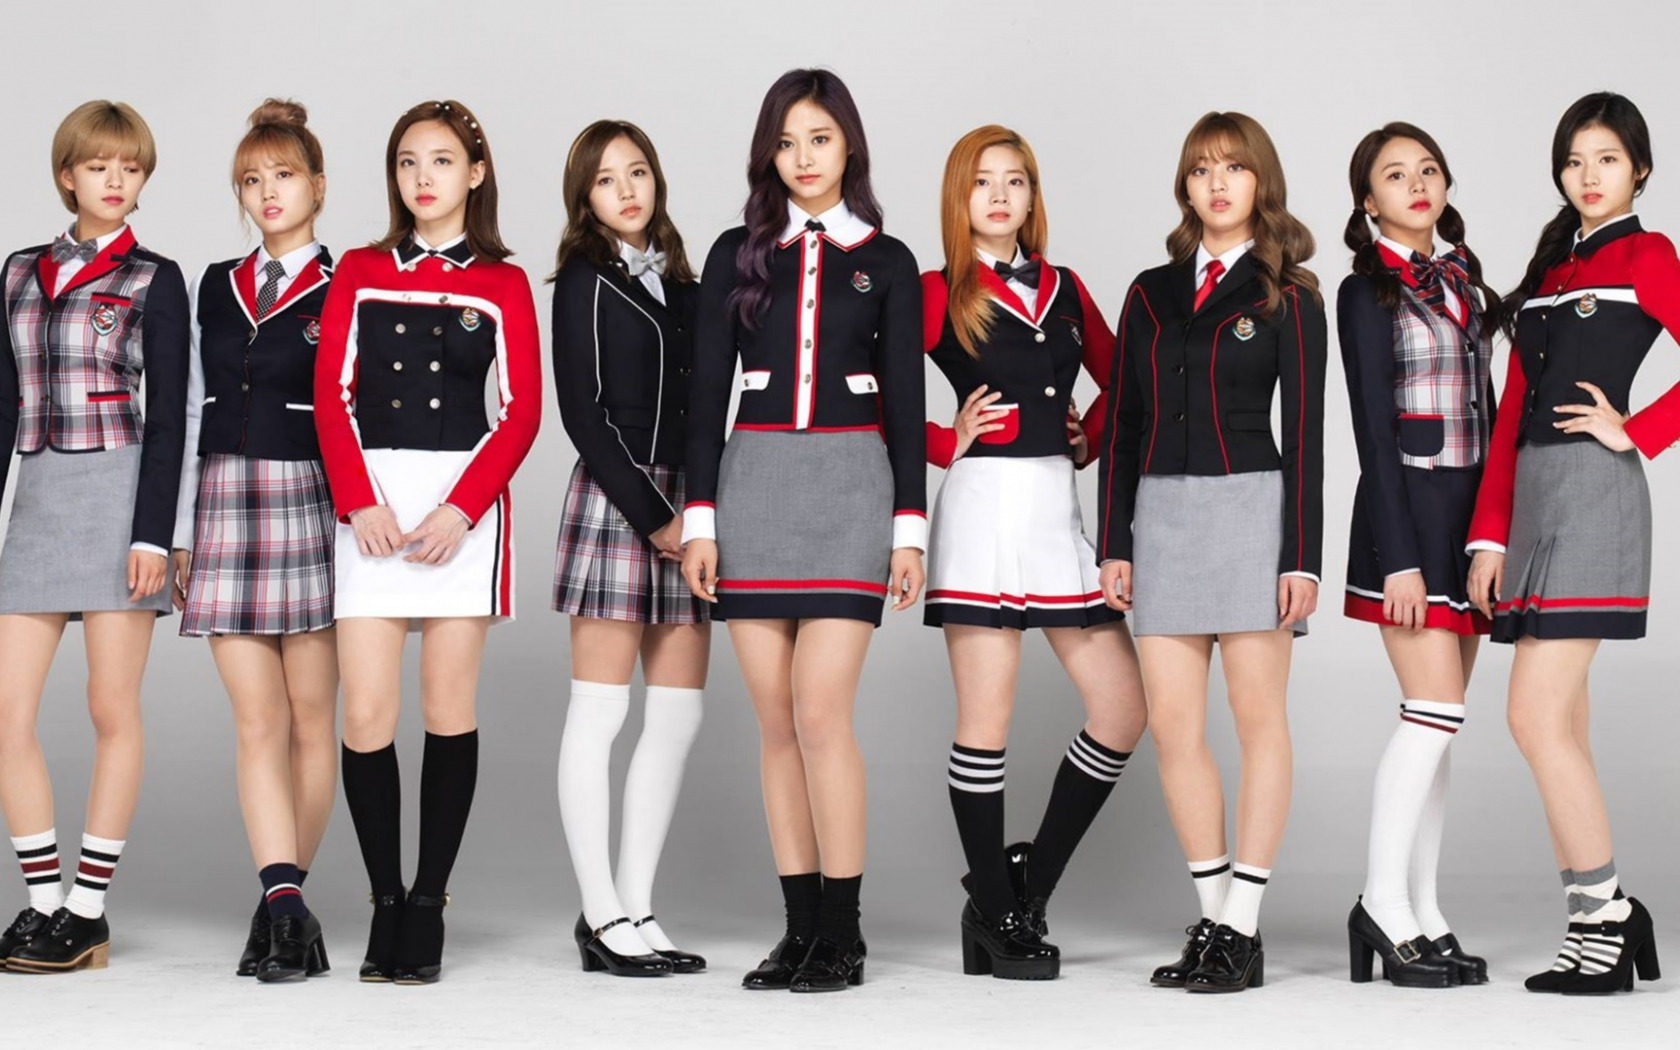 Free Download Twice Hd Wallpaper Background Image 1920x1080 Id858064 1920x1080 For Your Desktop Mobile Tablet Explore 24 Twice Wallpapers Twice Wallpapers Twice Bdz Wallpapers Twice Fancy Wallpapers